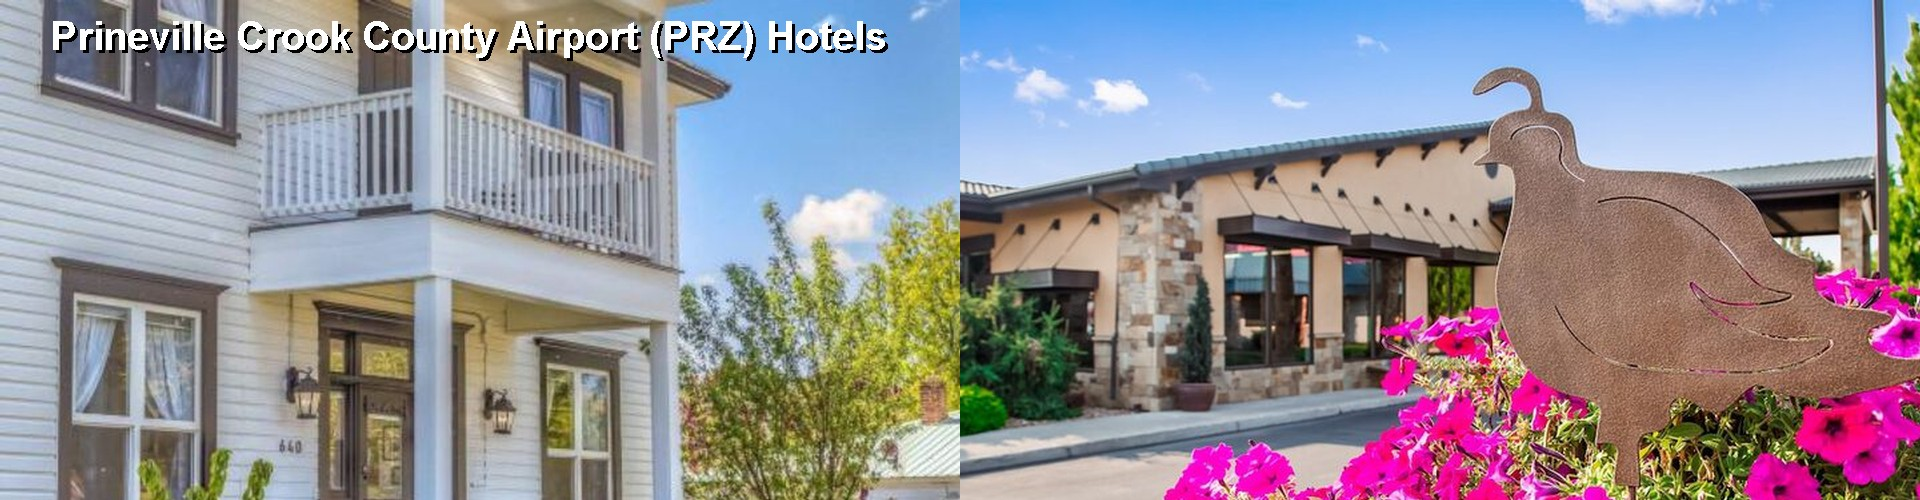 Hotels Near Prineville Crook County Airport Prz Or